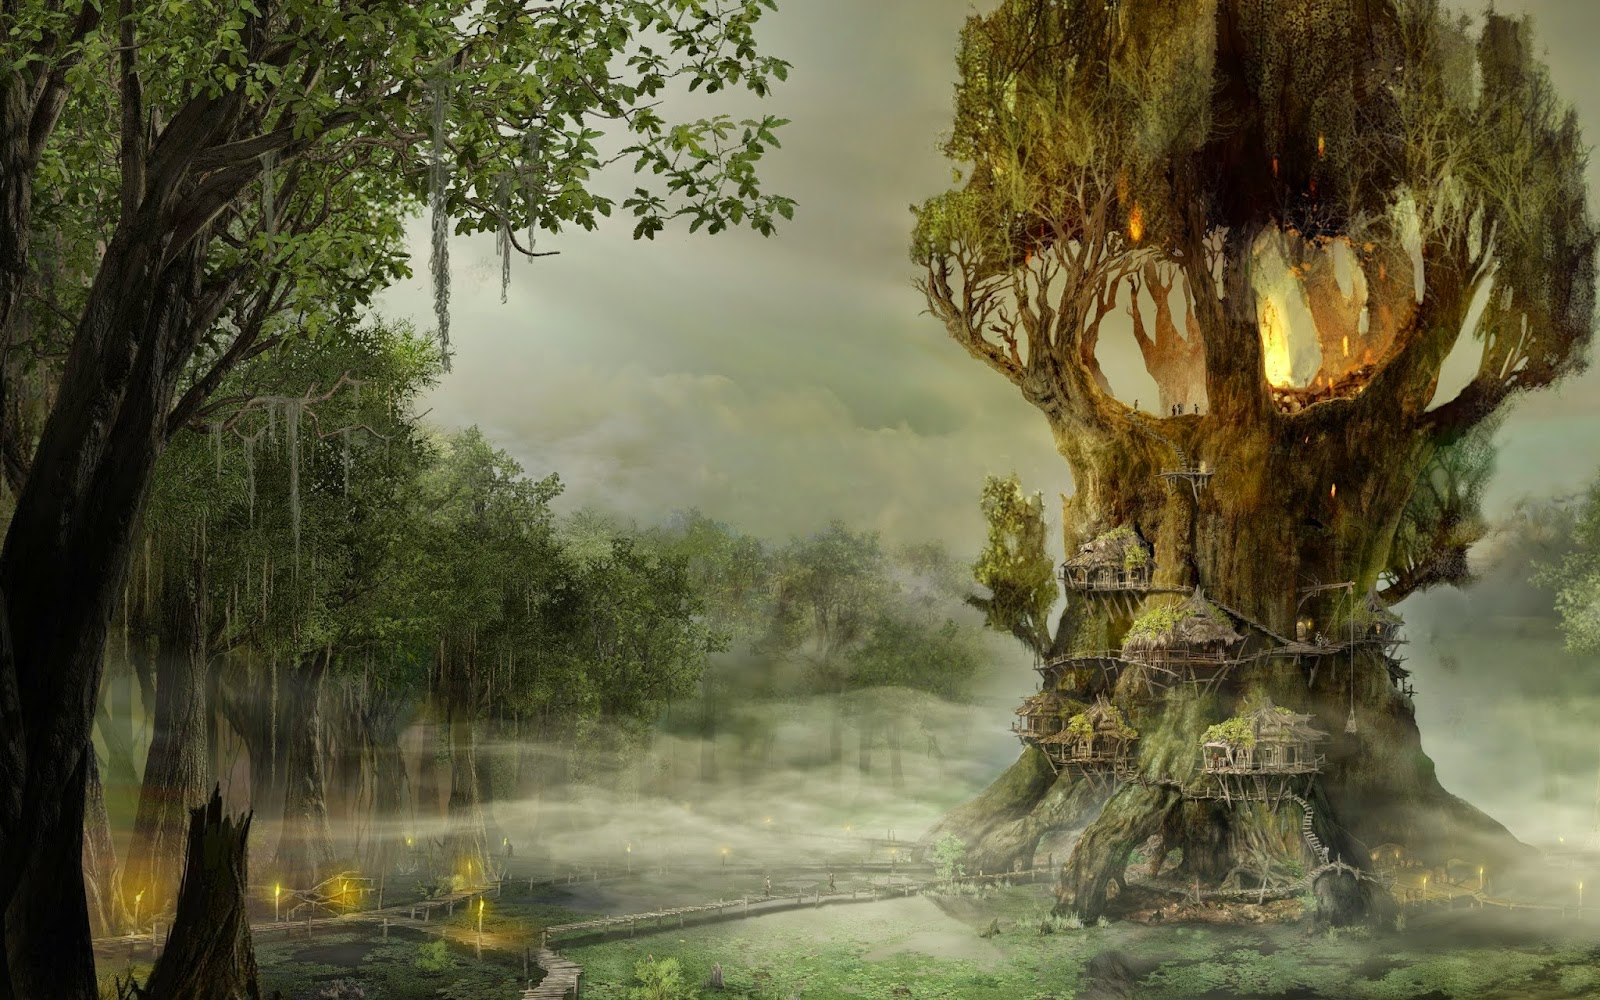 Stunning Hd Fantasy Wallpapers: Beautiful Tree House Fantasy Fairy Tale Images Pictures HD